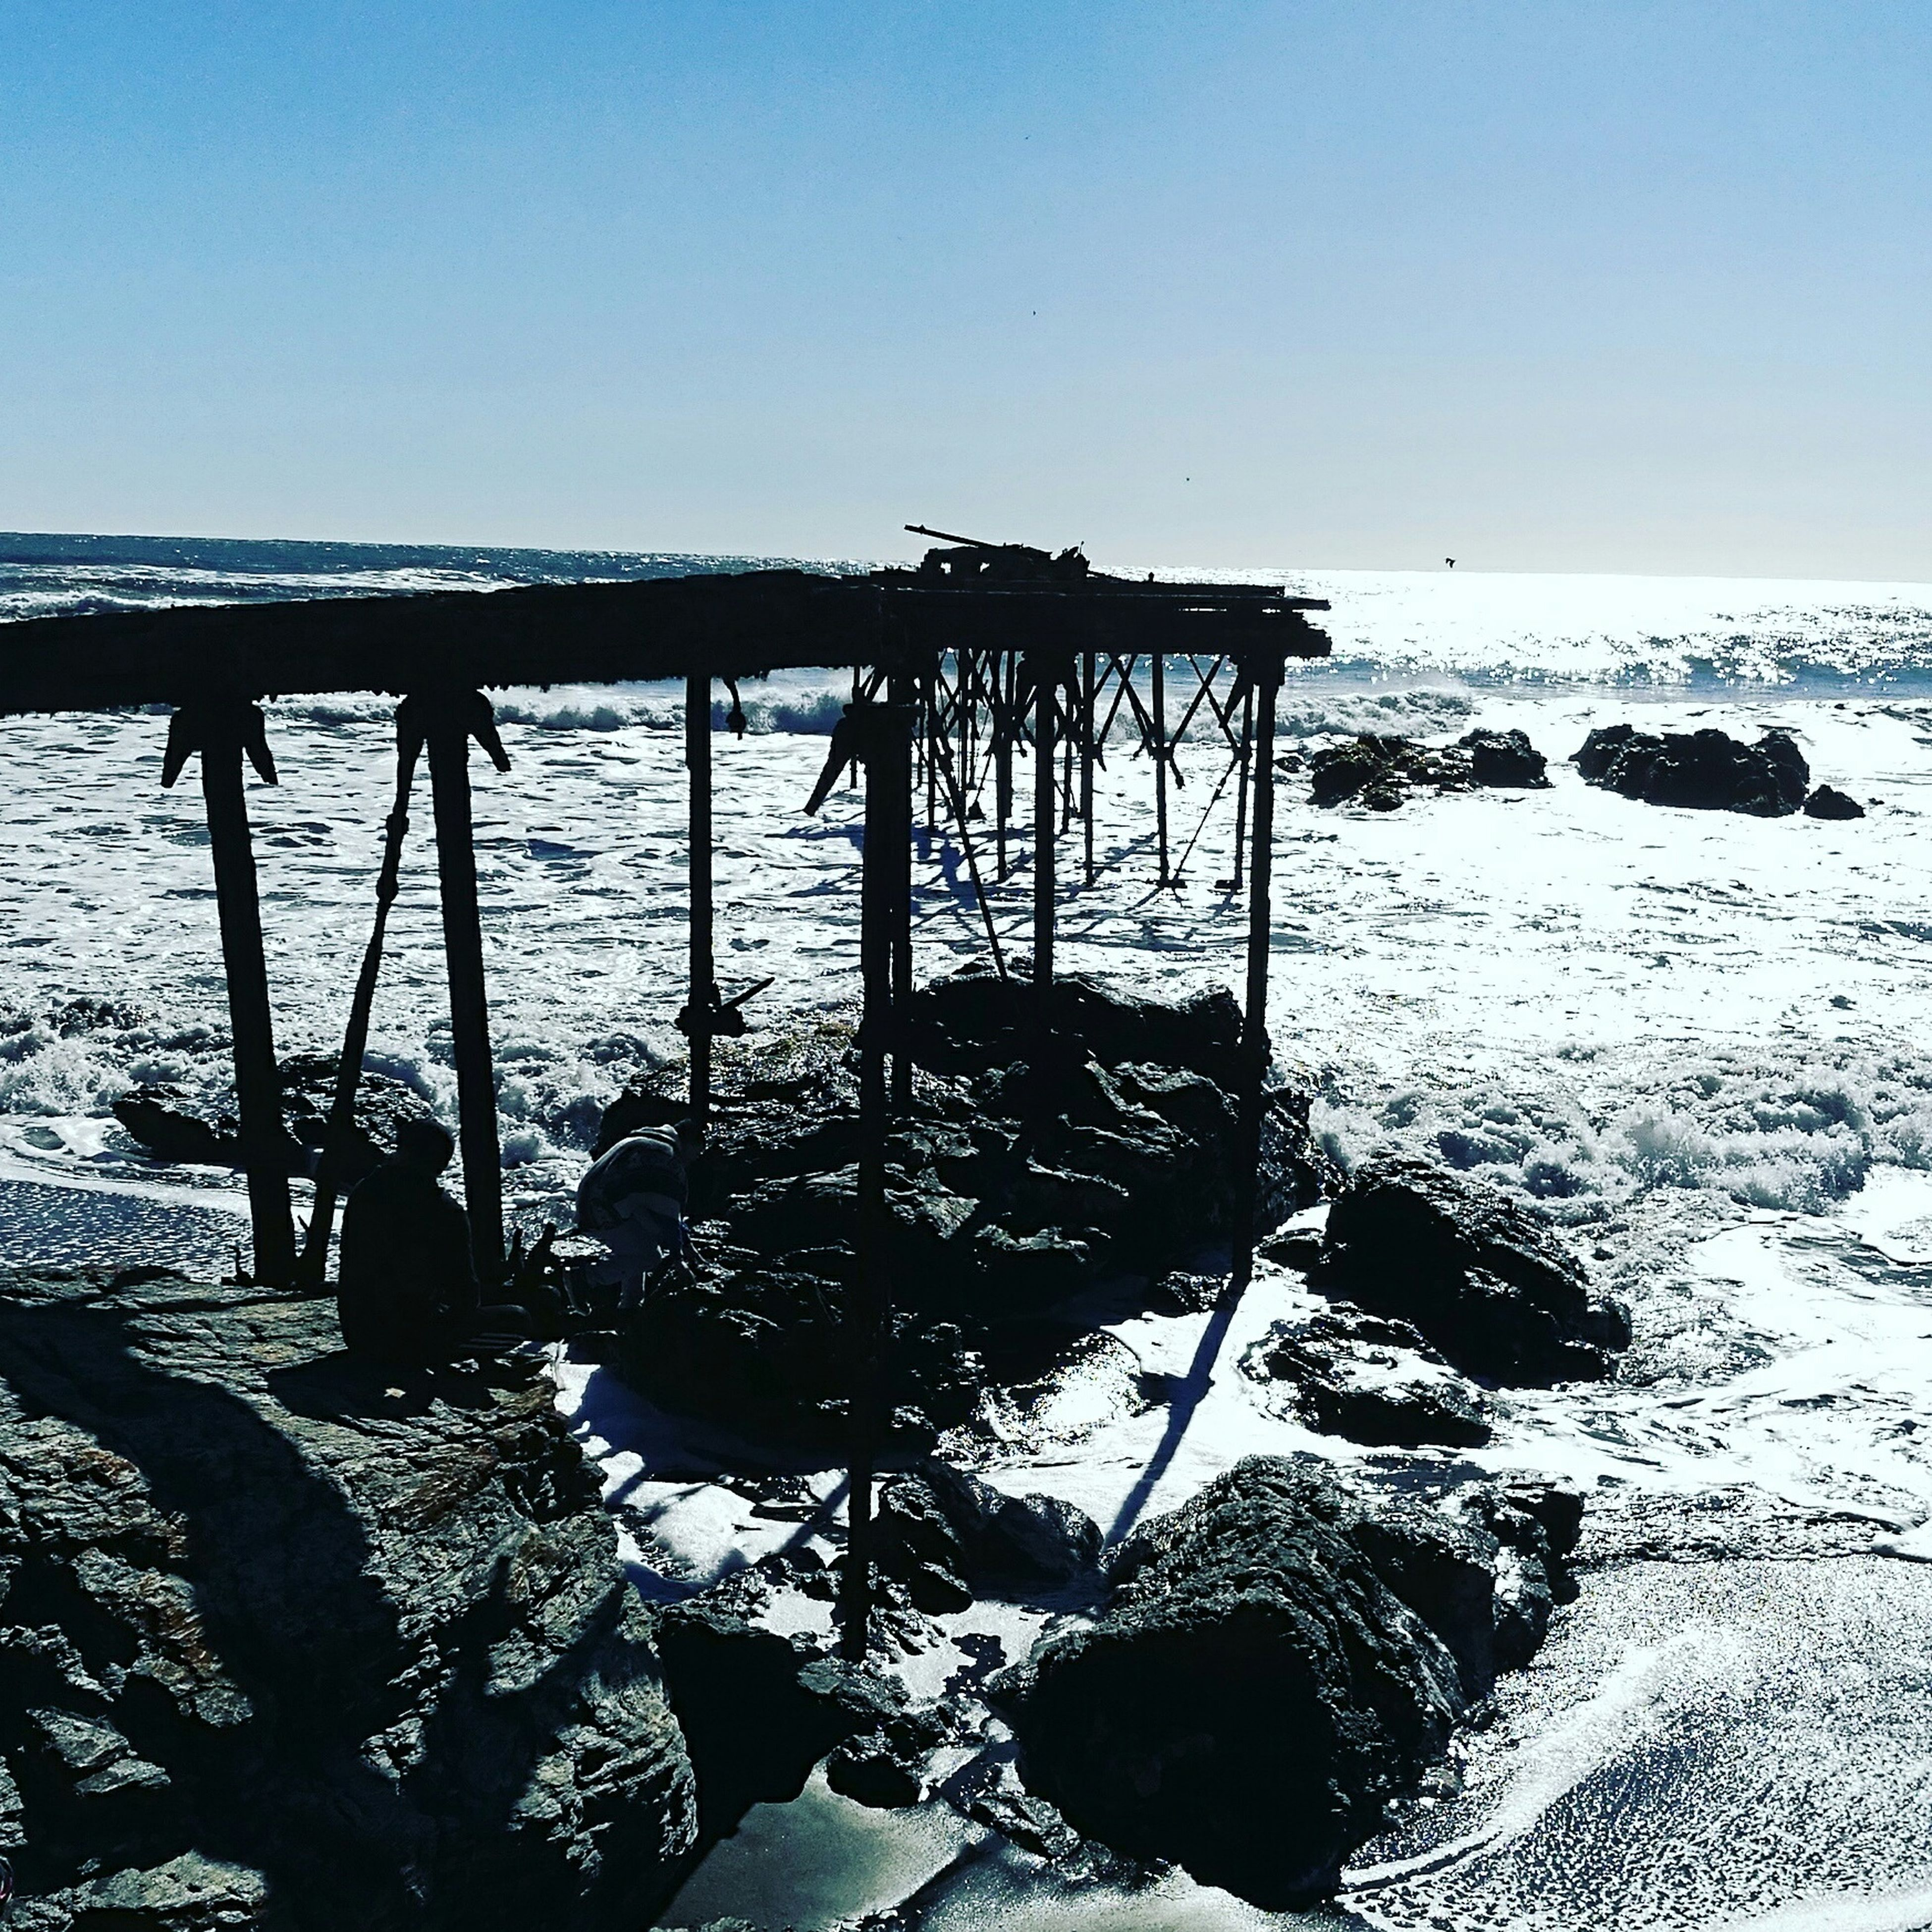 sea, water, beach, rock - object, tranquil scene, nature, beauty in nature, tranquility, outdoors, clear sky, no people, scenics, day, horizon over water, sunlight, sky